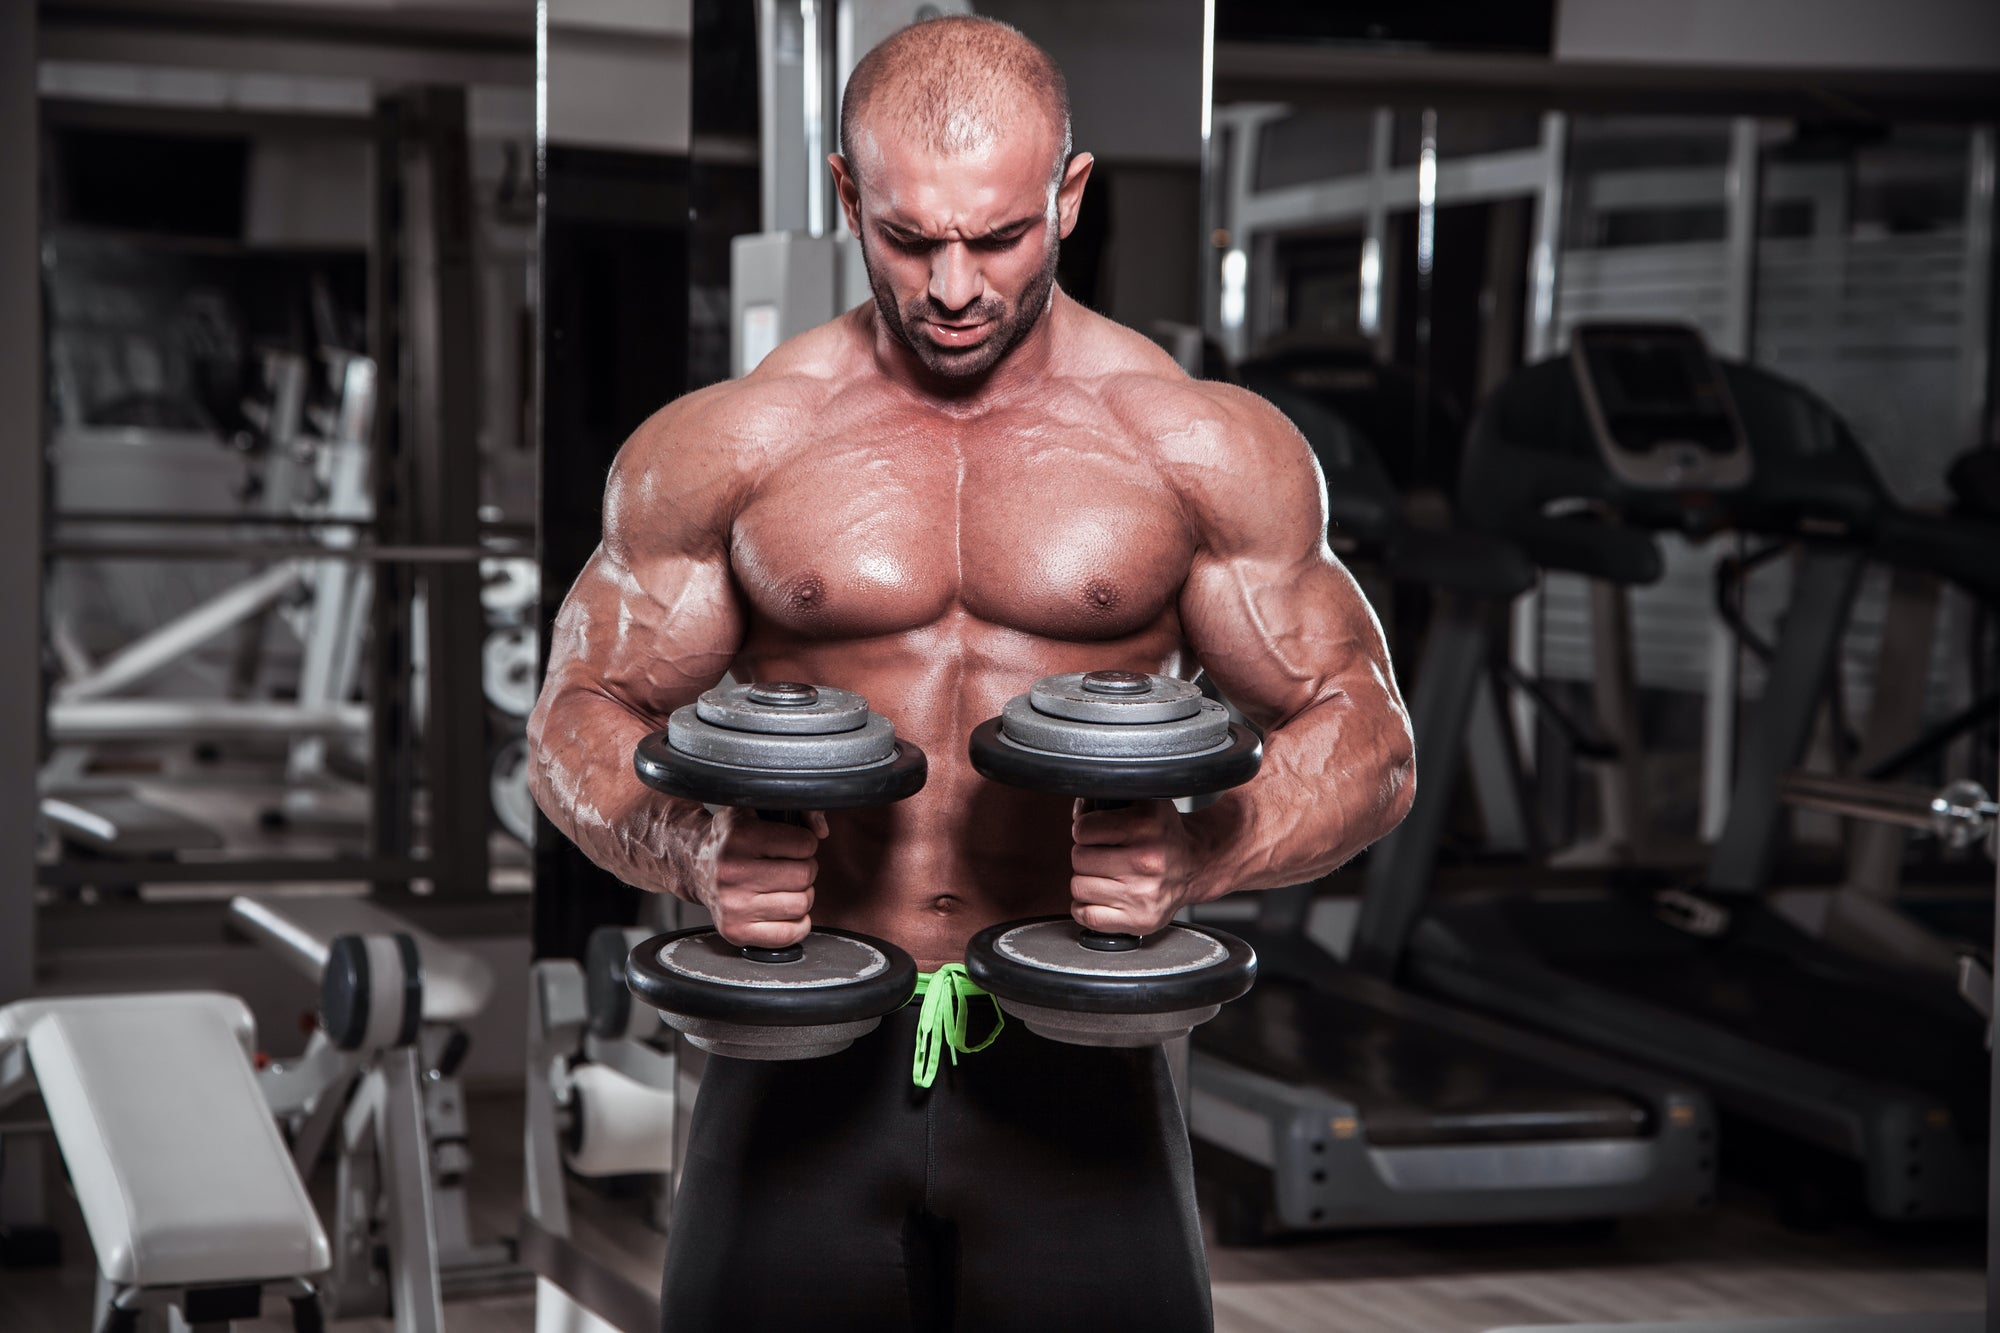 How To Take Body Measurements Like A Bodybuilder